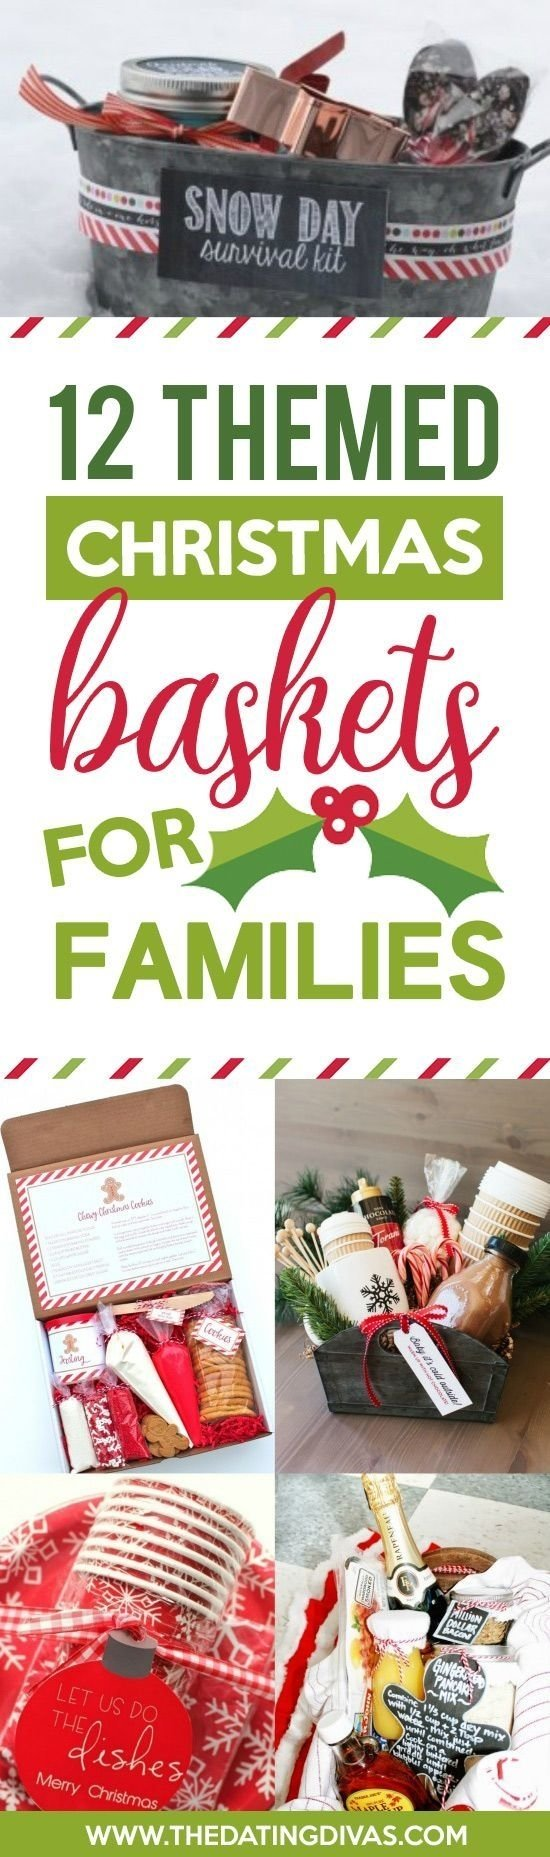 10 Lovable Christmas Gift Ideas For A Family 1135 best gift ideas images on pinterest a kiss basket of 2021